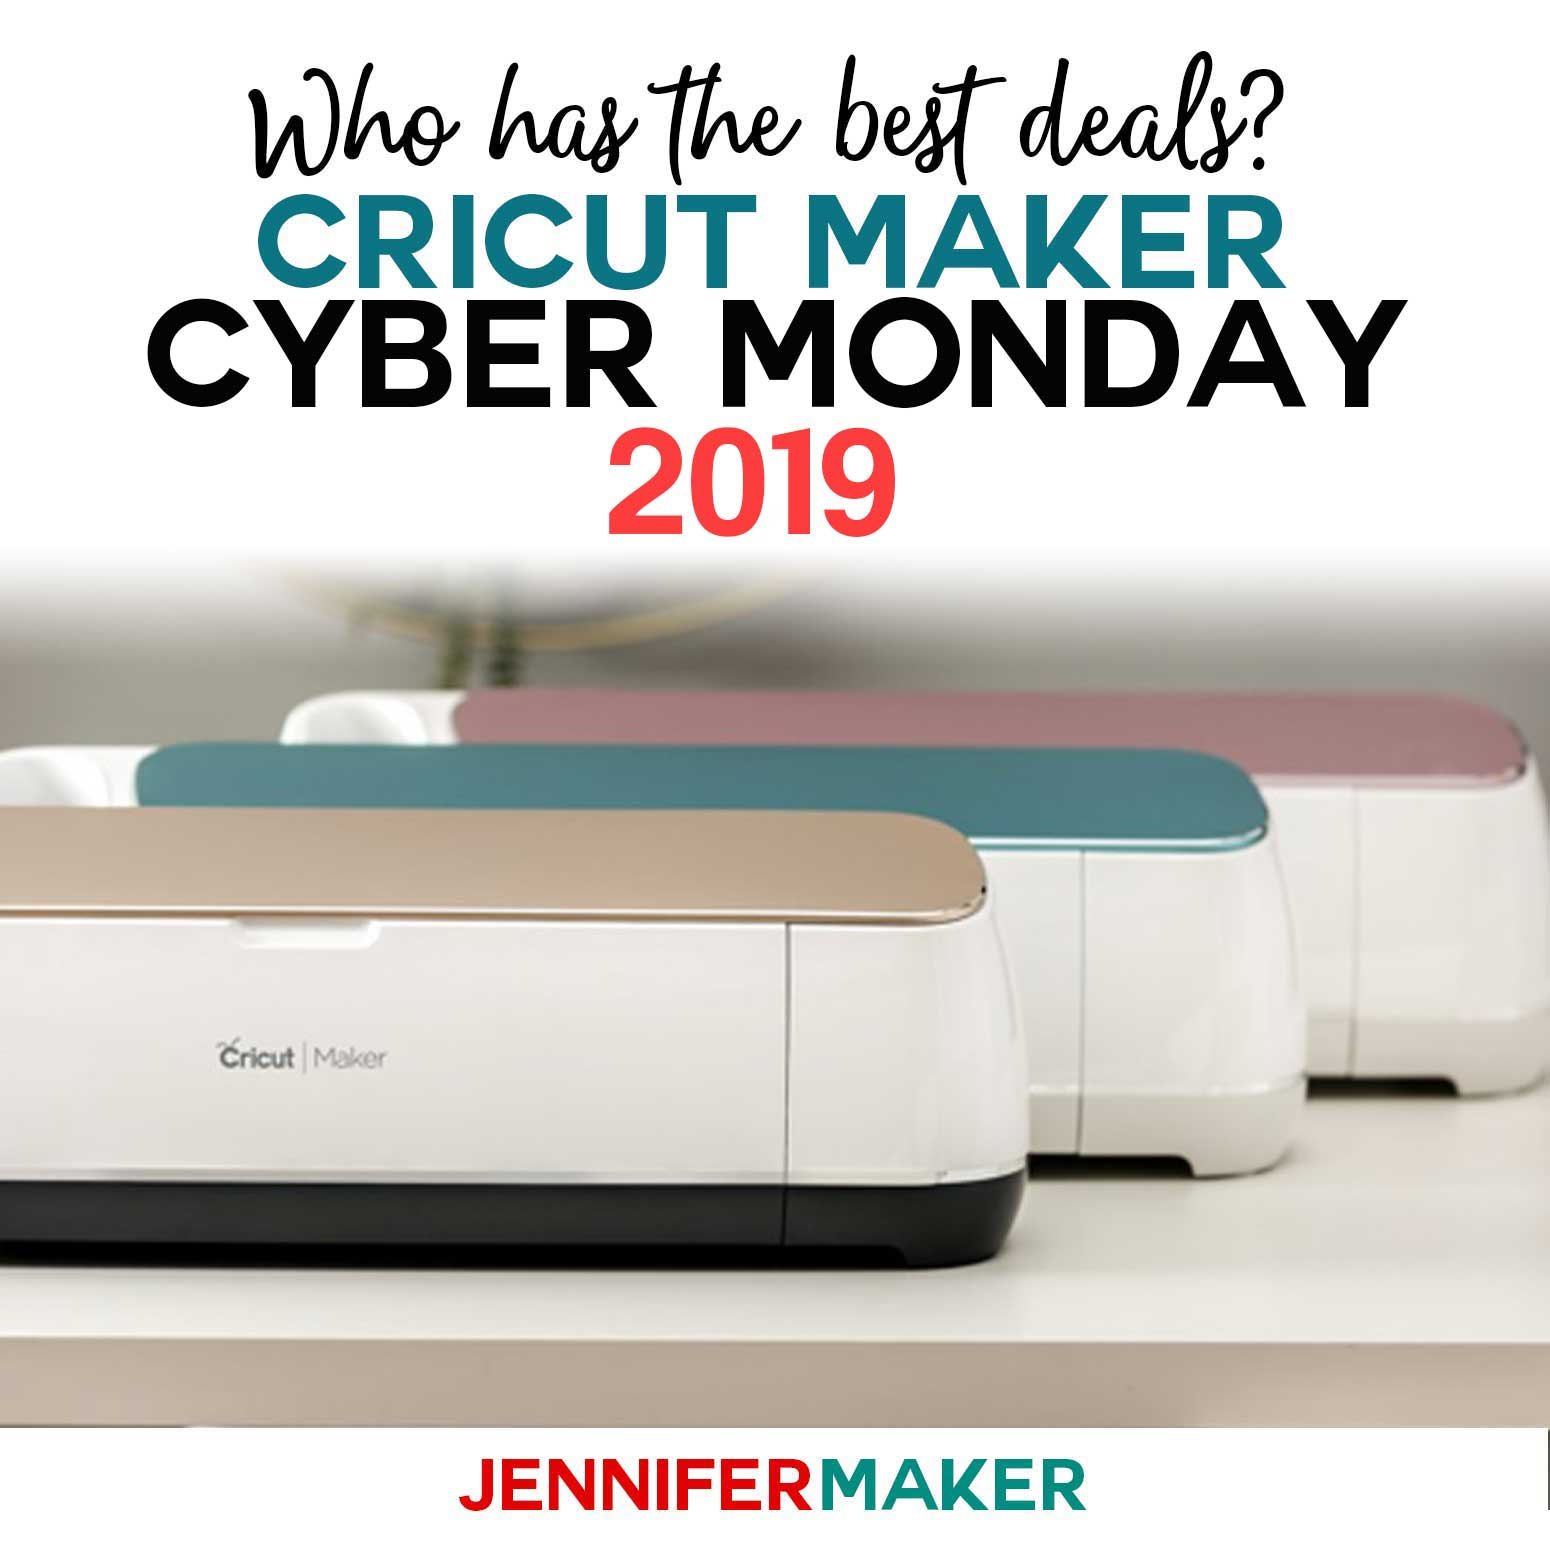 Cricut Maker Cyber Monday 2019 Deals